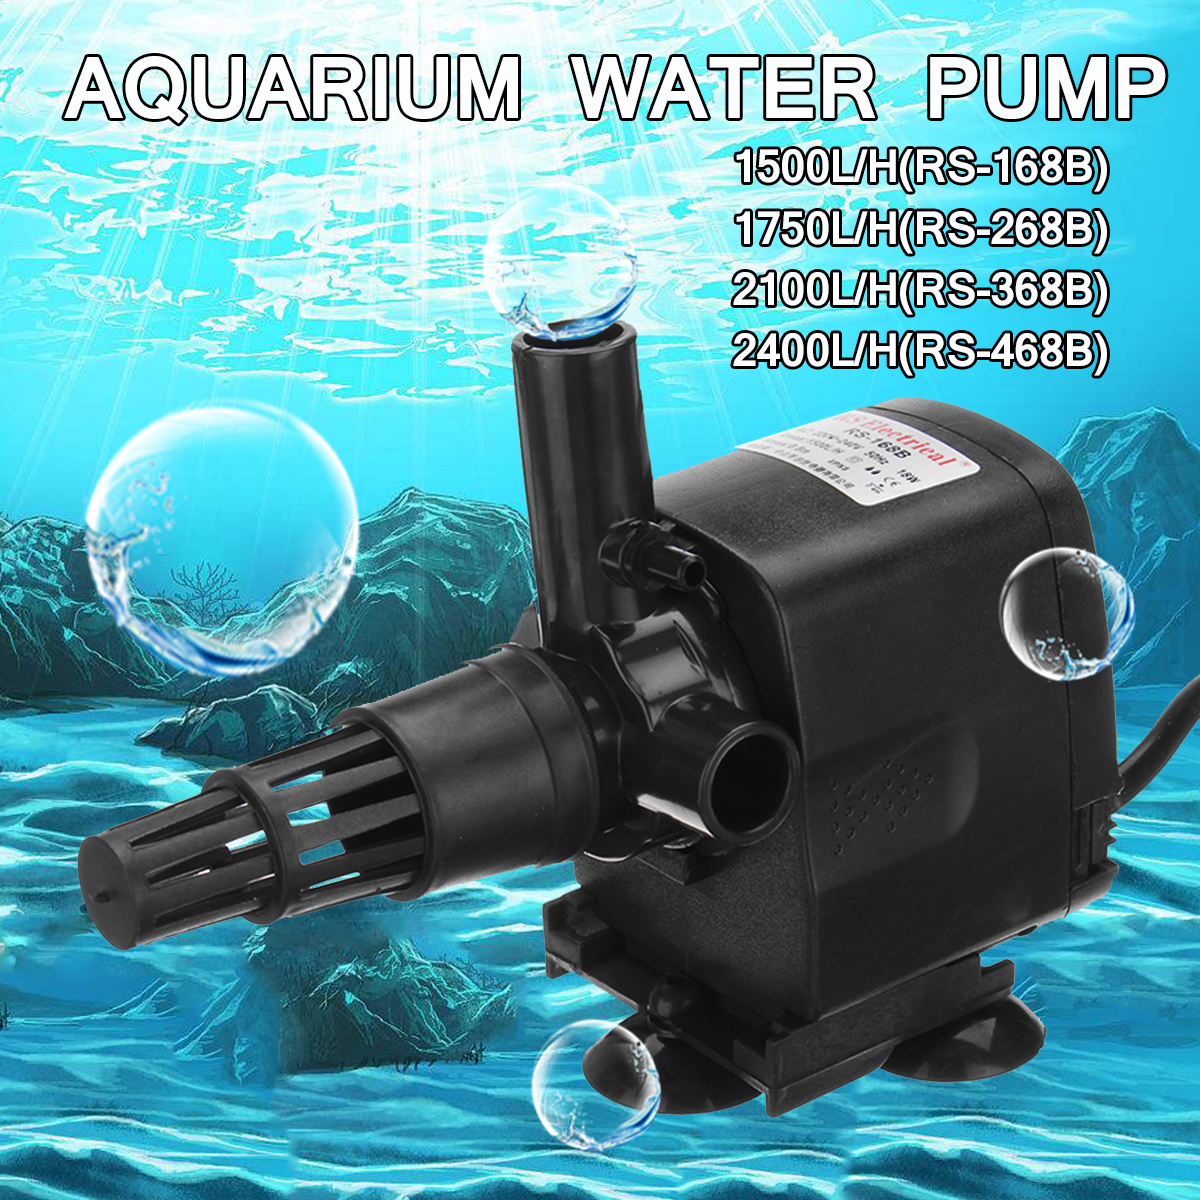 18/20/30/40W Mini Submersible Water Pump 220V Fish Pond Aquarium Tank Fountain Oxygen Air Compressor Aerator Air Flow Maker Pump high luminous lampada 4300 lm 50w e40 led bulb light 165 leds 5730 smd corn lamp ac110 220v warm white cold white free shipping page 3